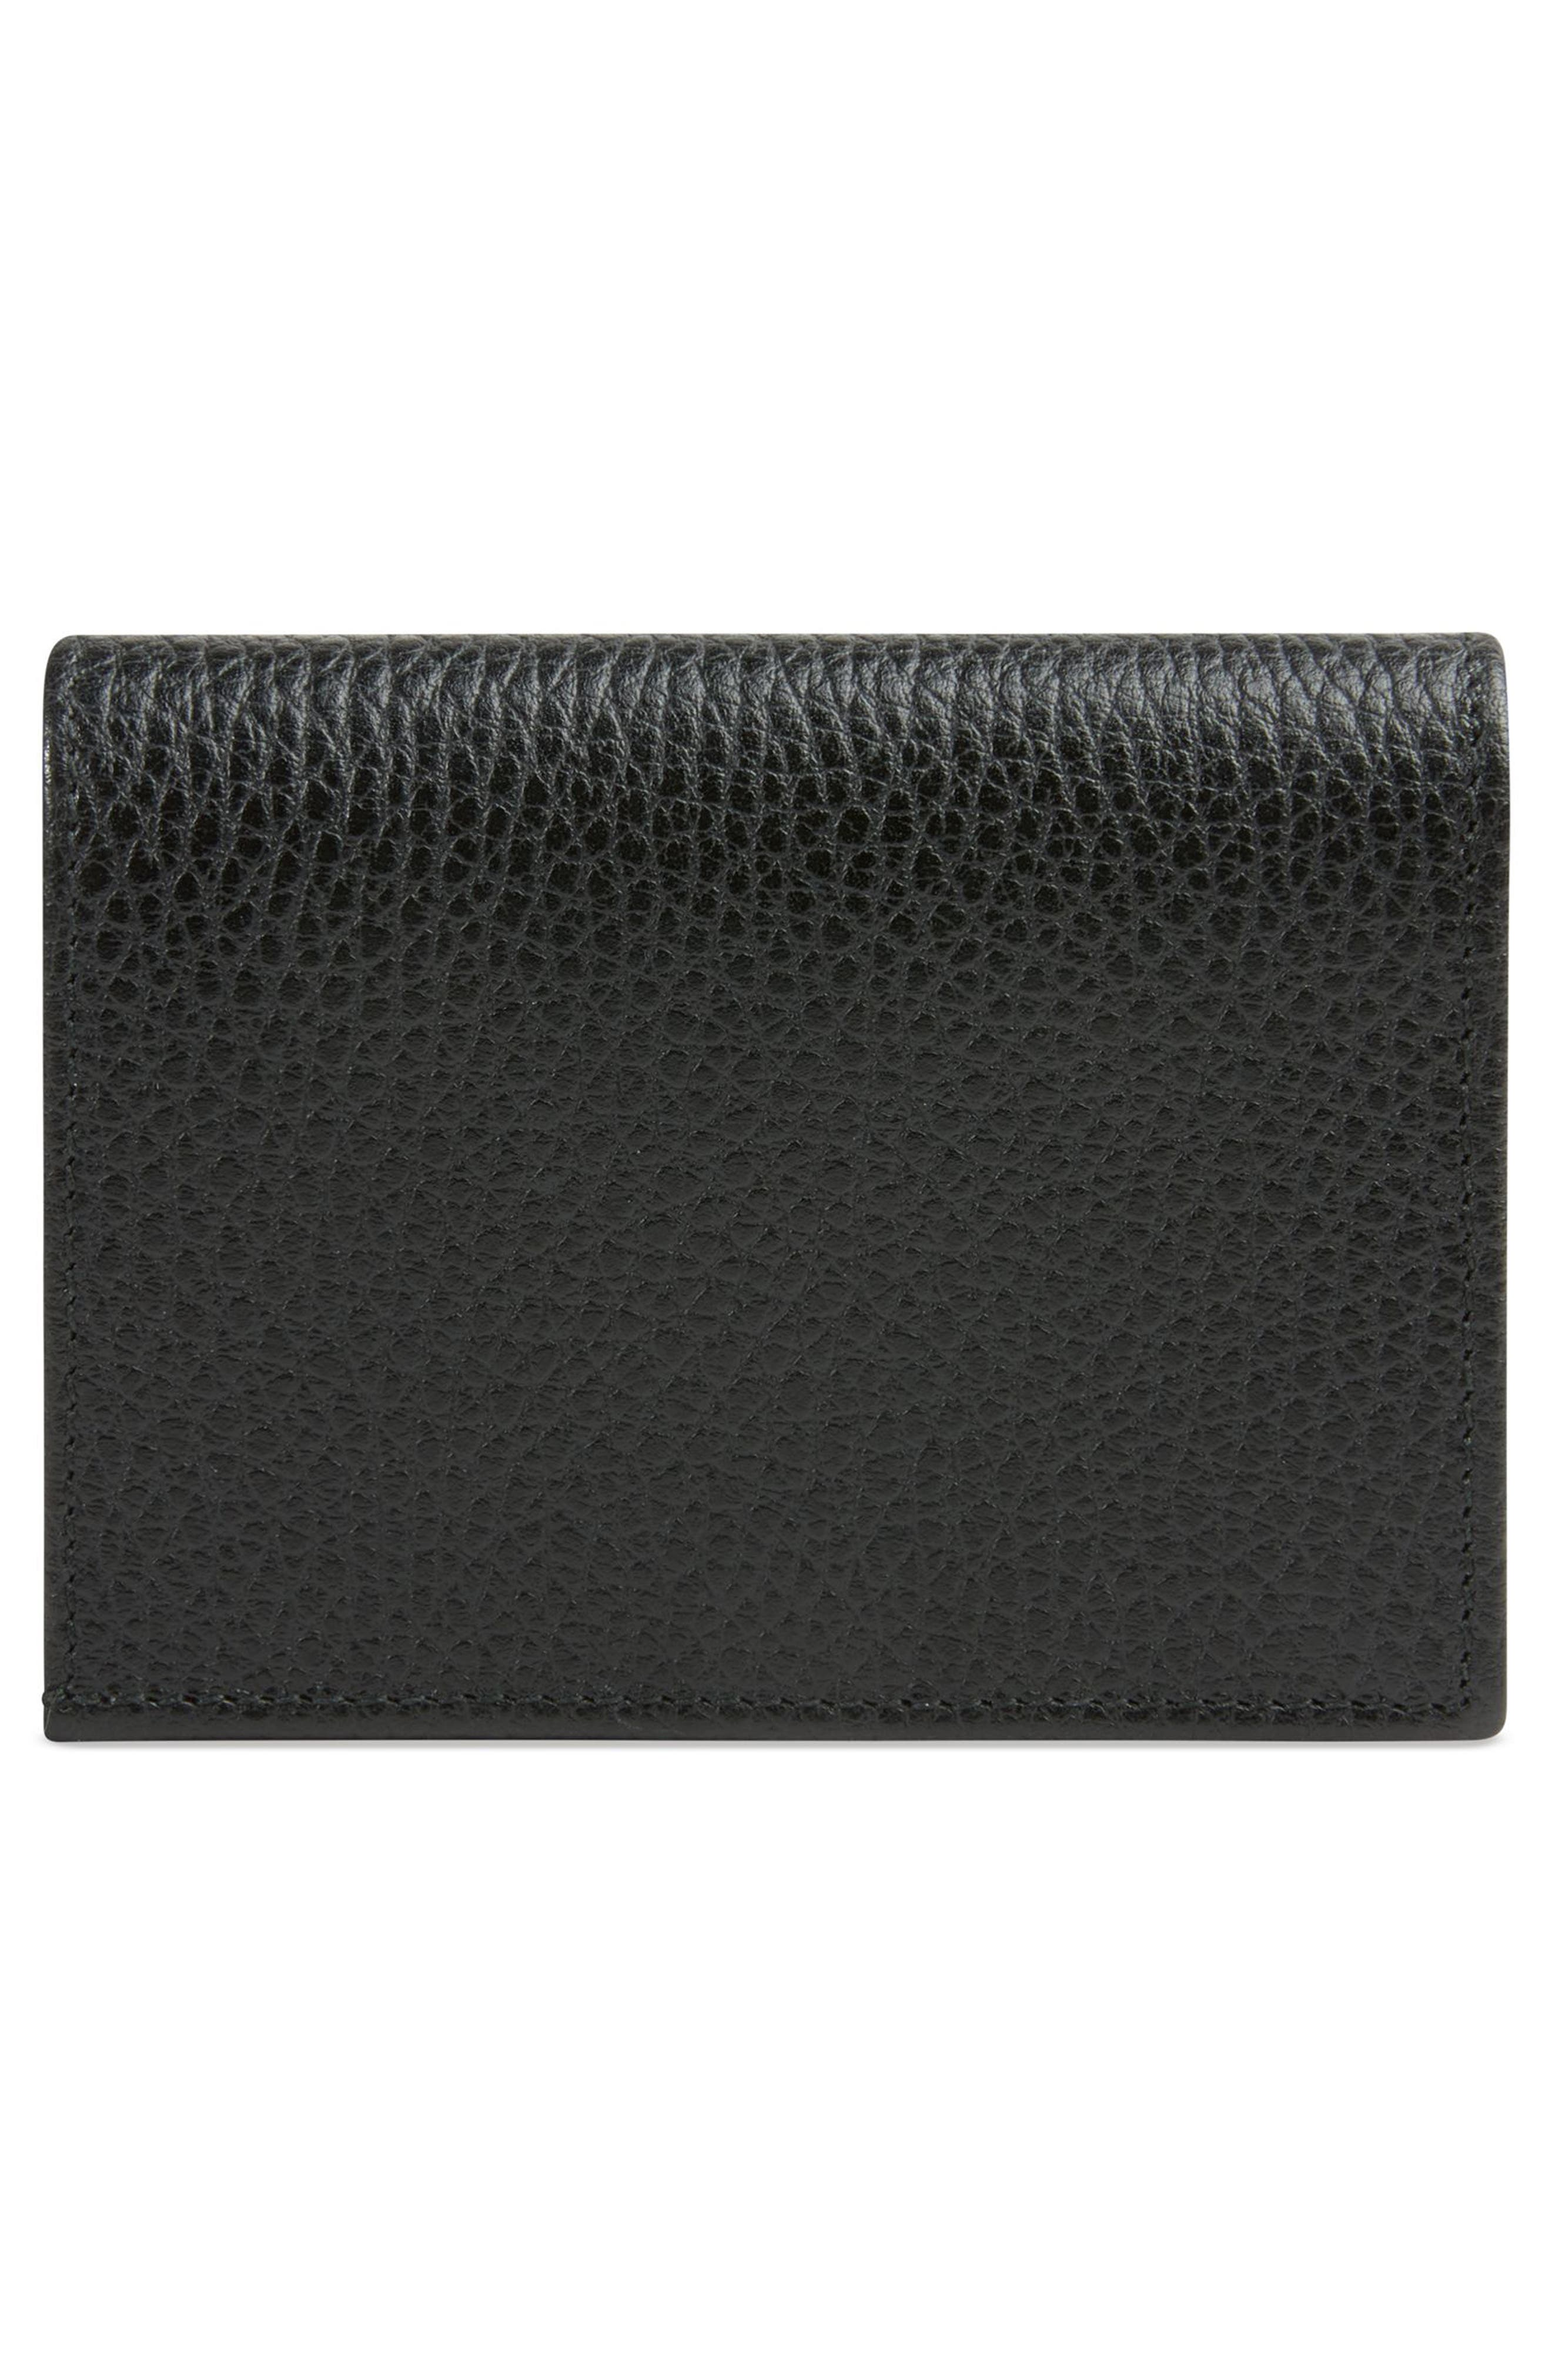 Fiocchino Leather Card Case,                             Alternate thumbnail 3, color,                             NERO/ PERFECT PINK/ CRYSTAL